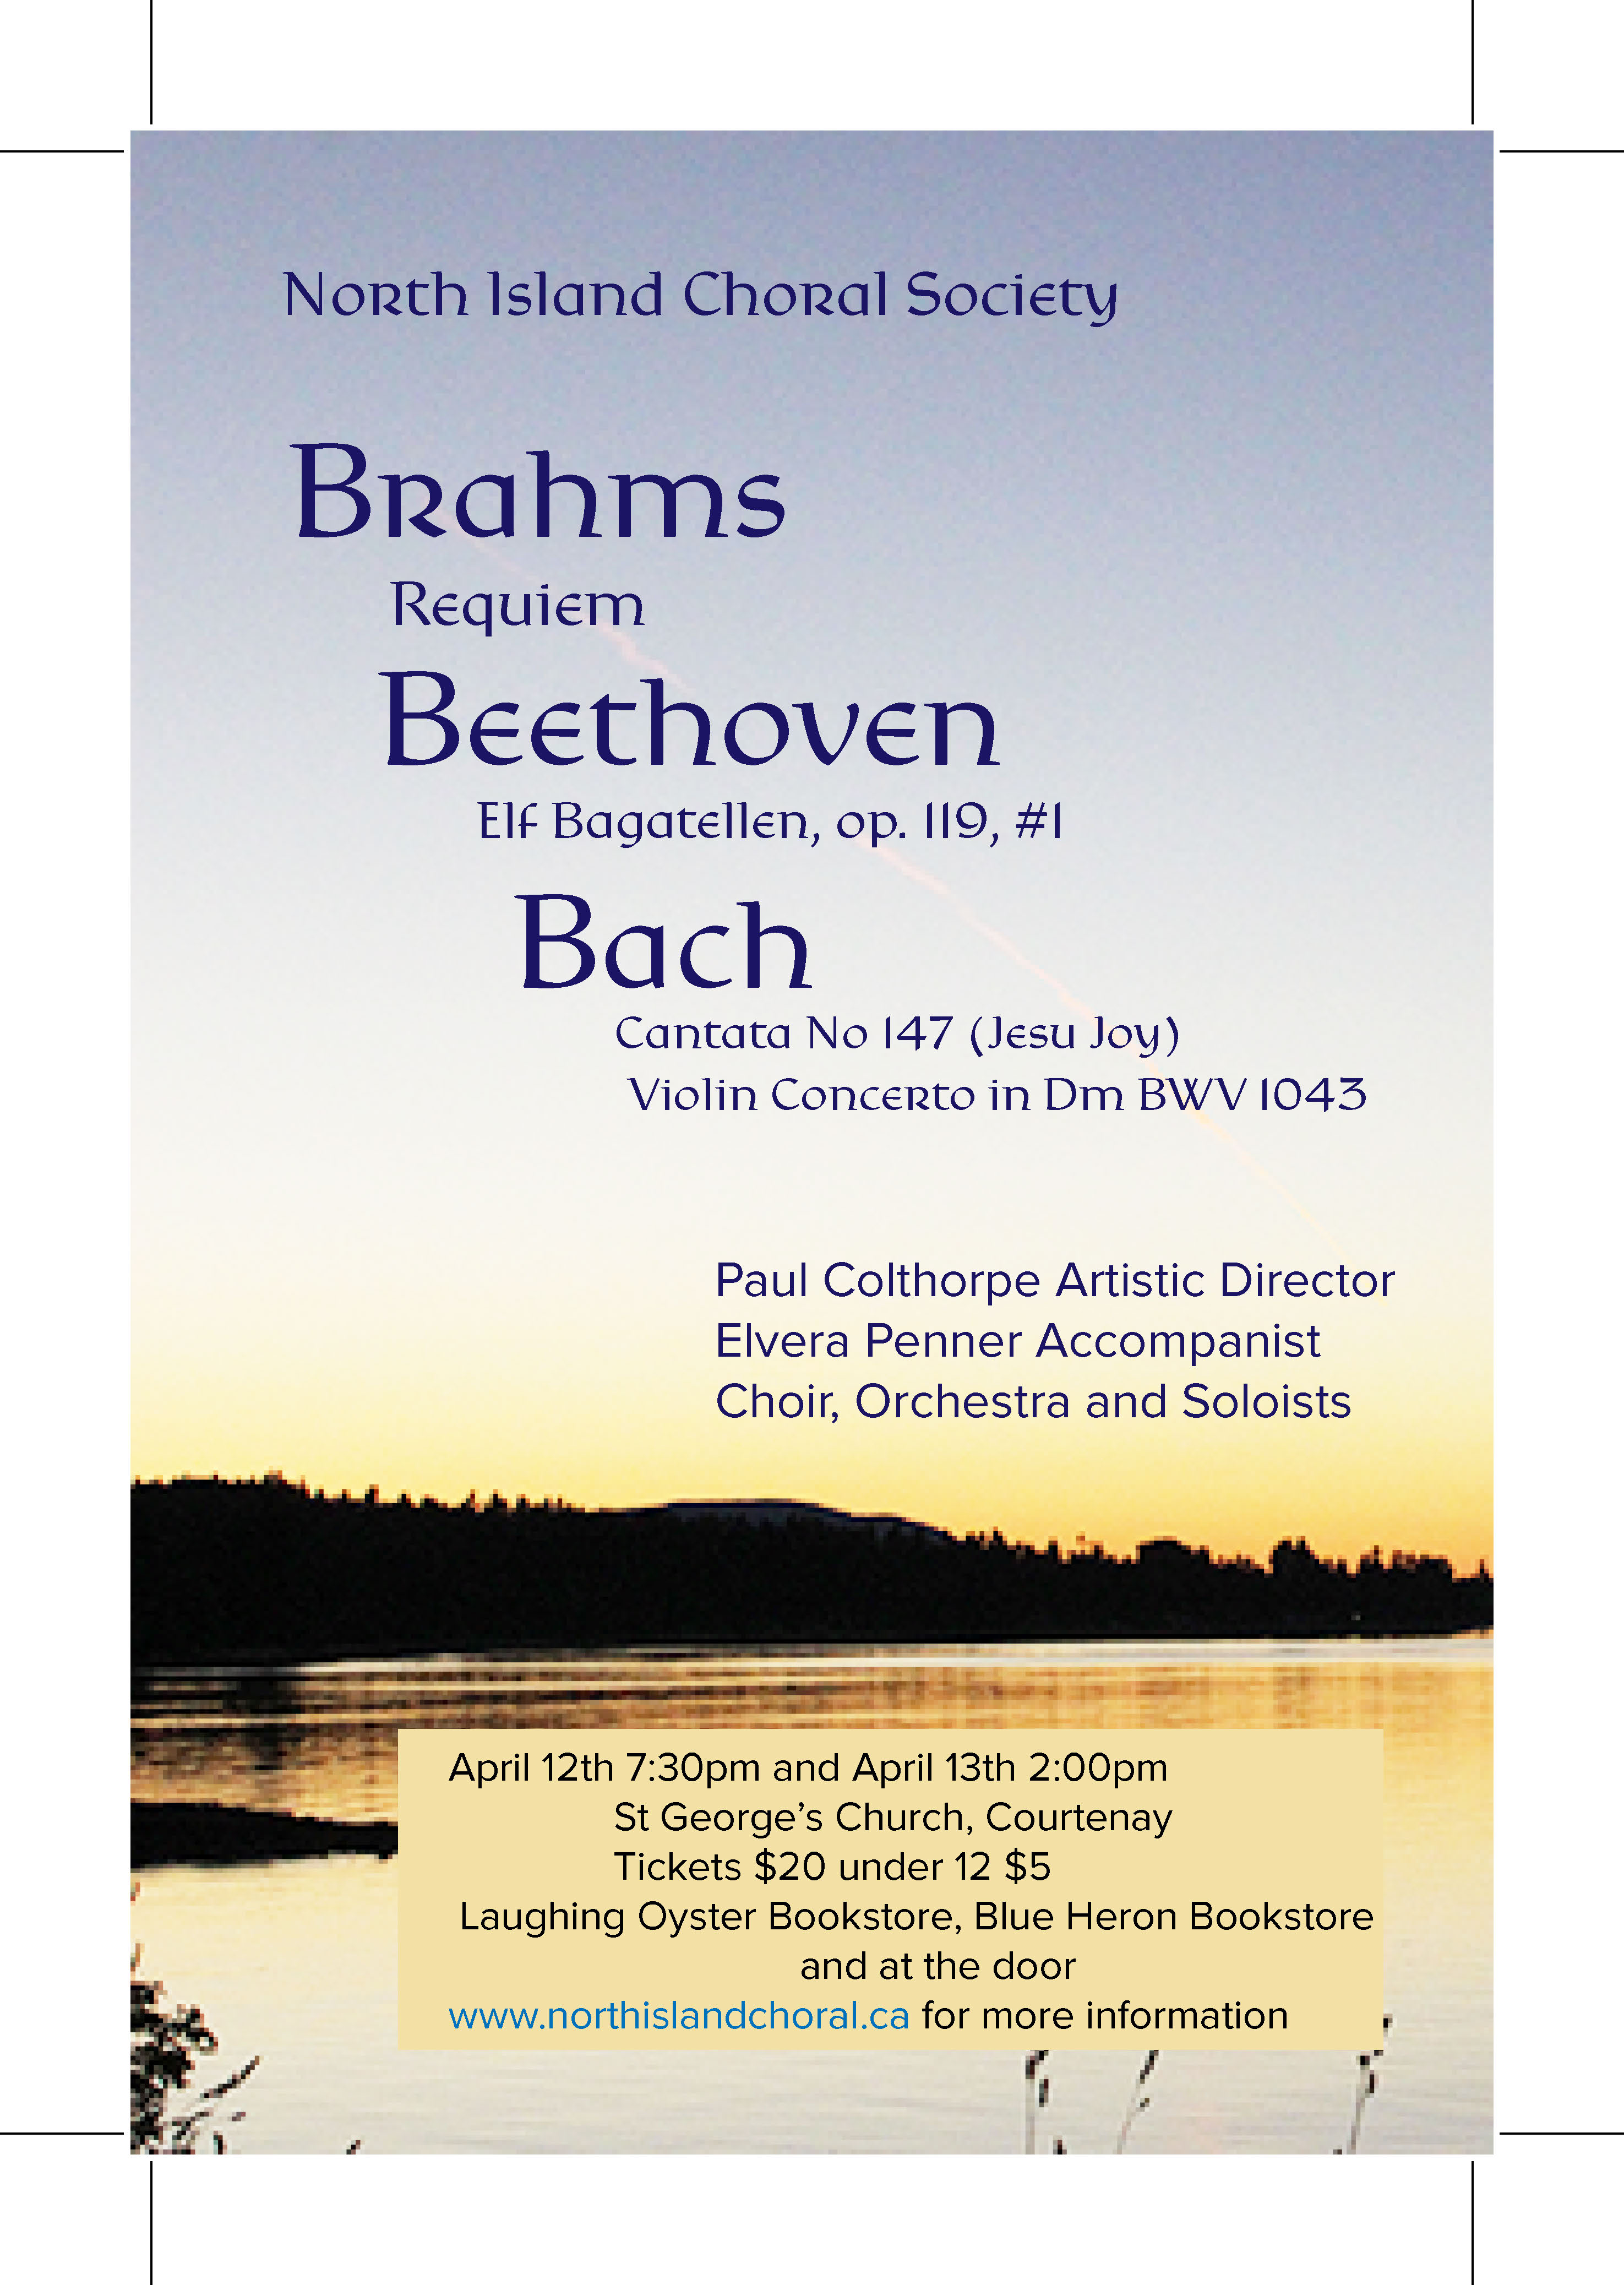 Brahms Requiem, Bach and Beethoven